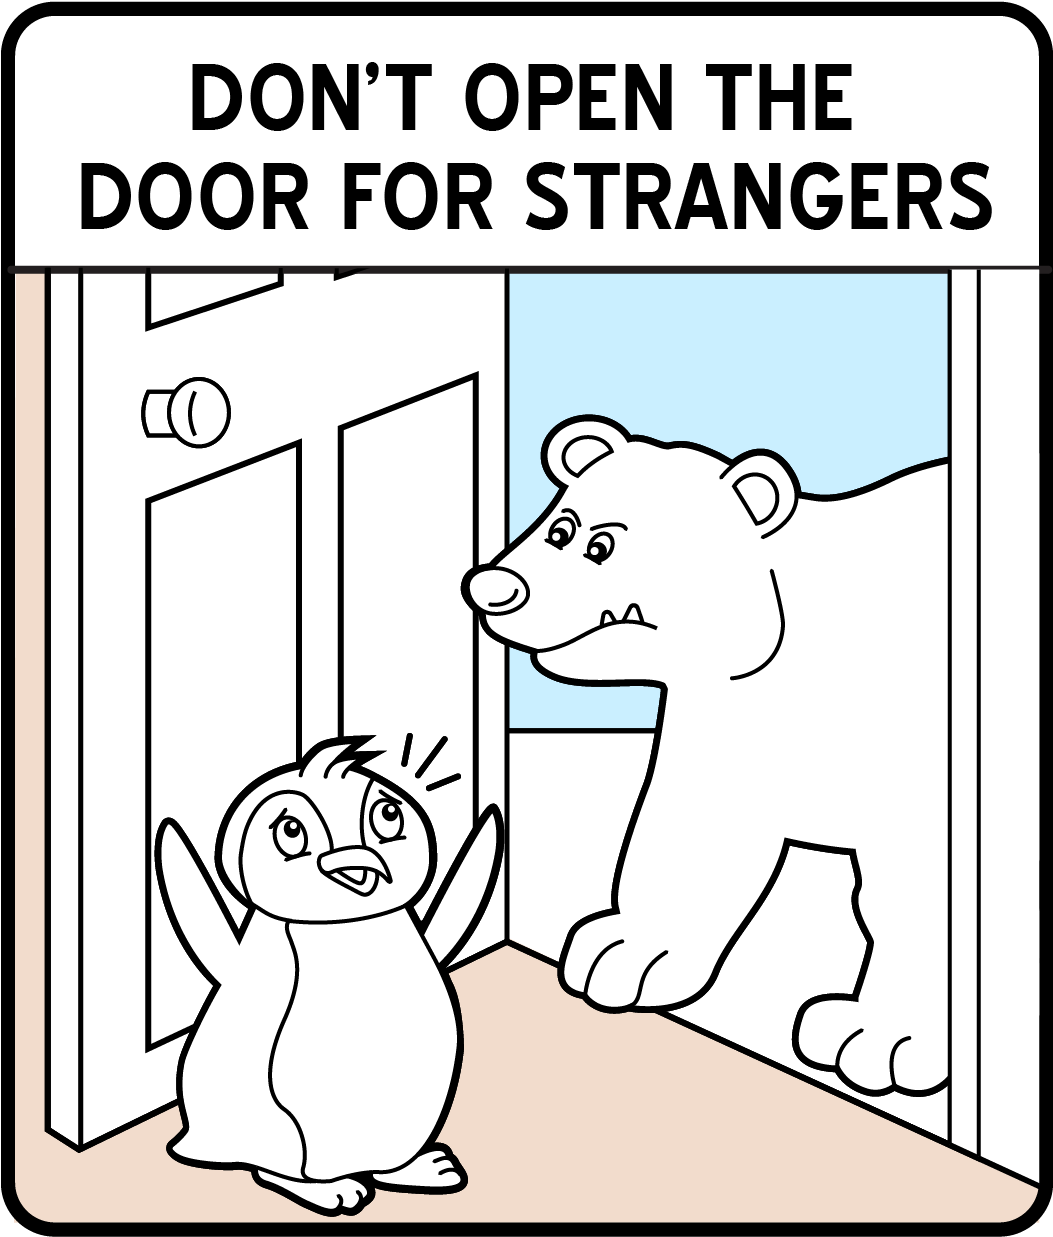 A colorable safety sign of a cartoon penguin frightened after opening the door to a polar bear.